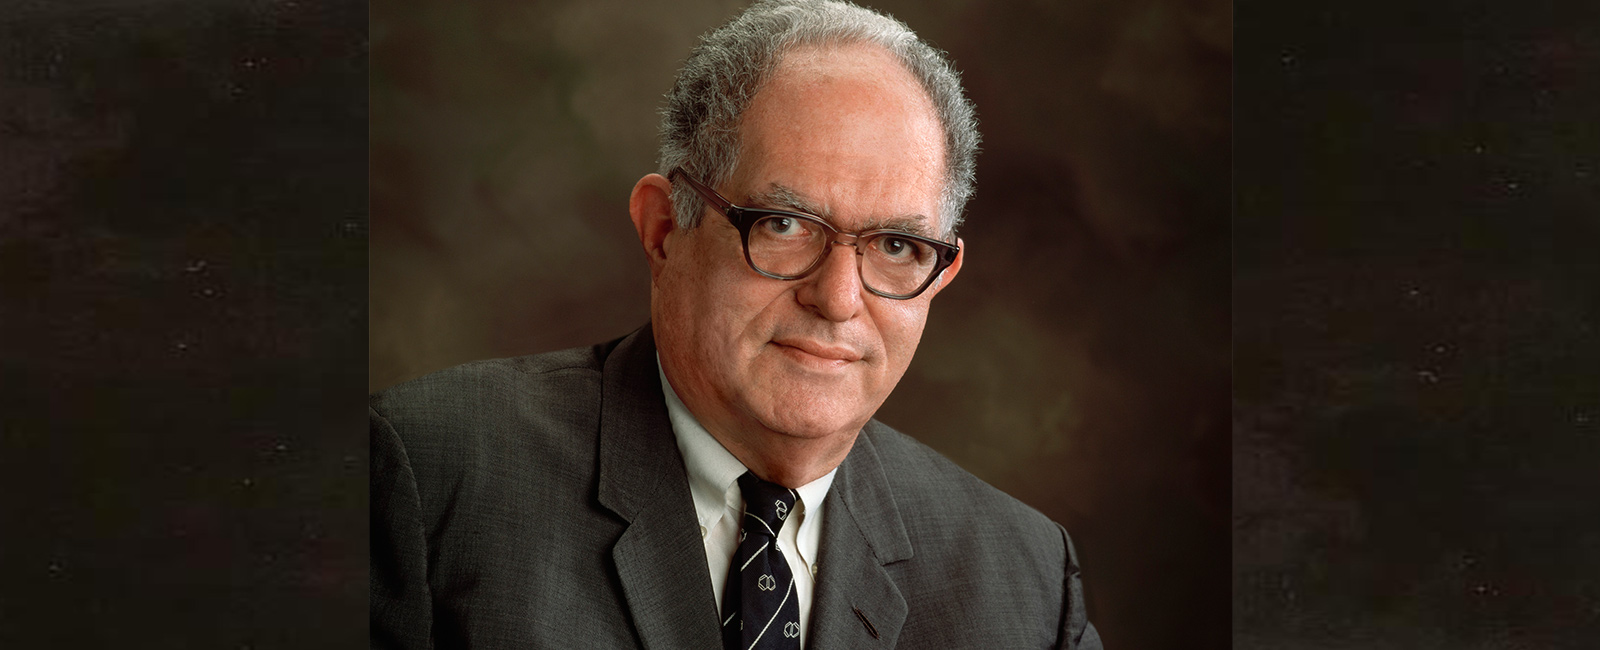 Headshot of Professor Jeffrey Steinfeld